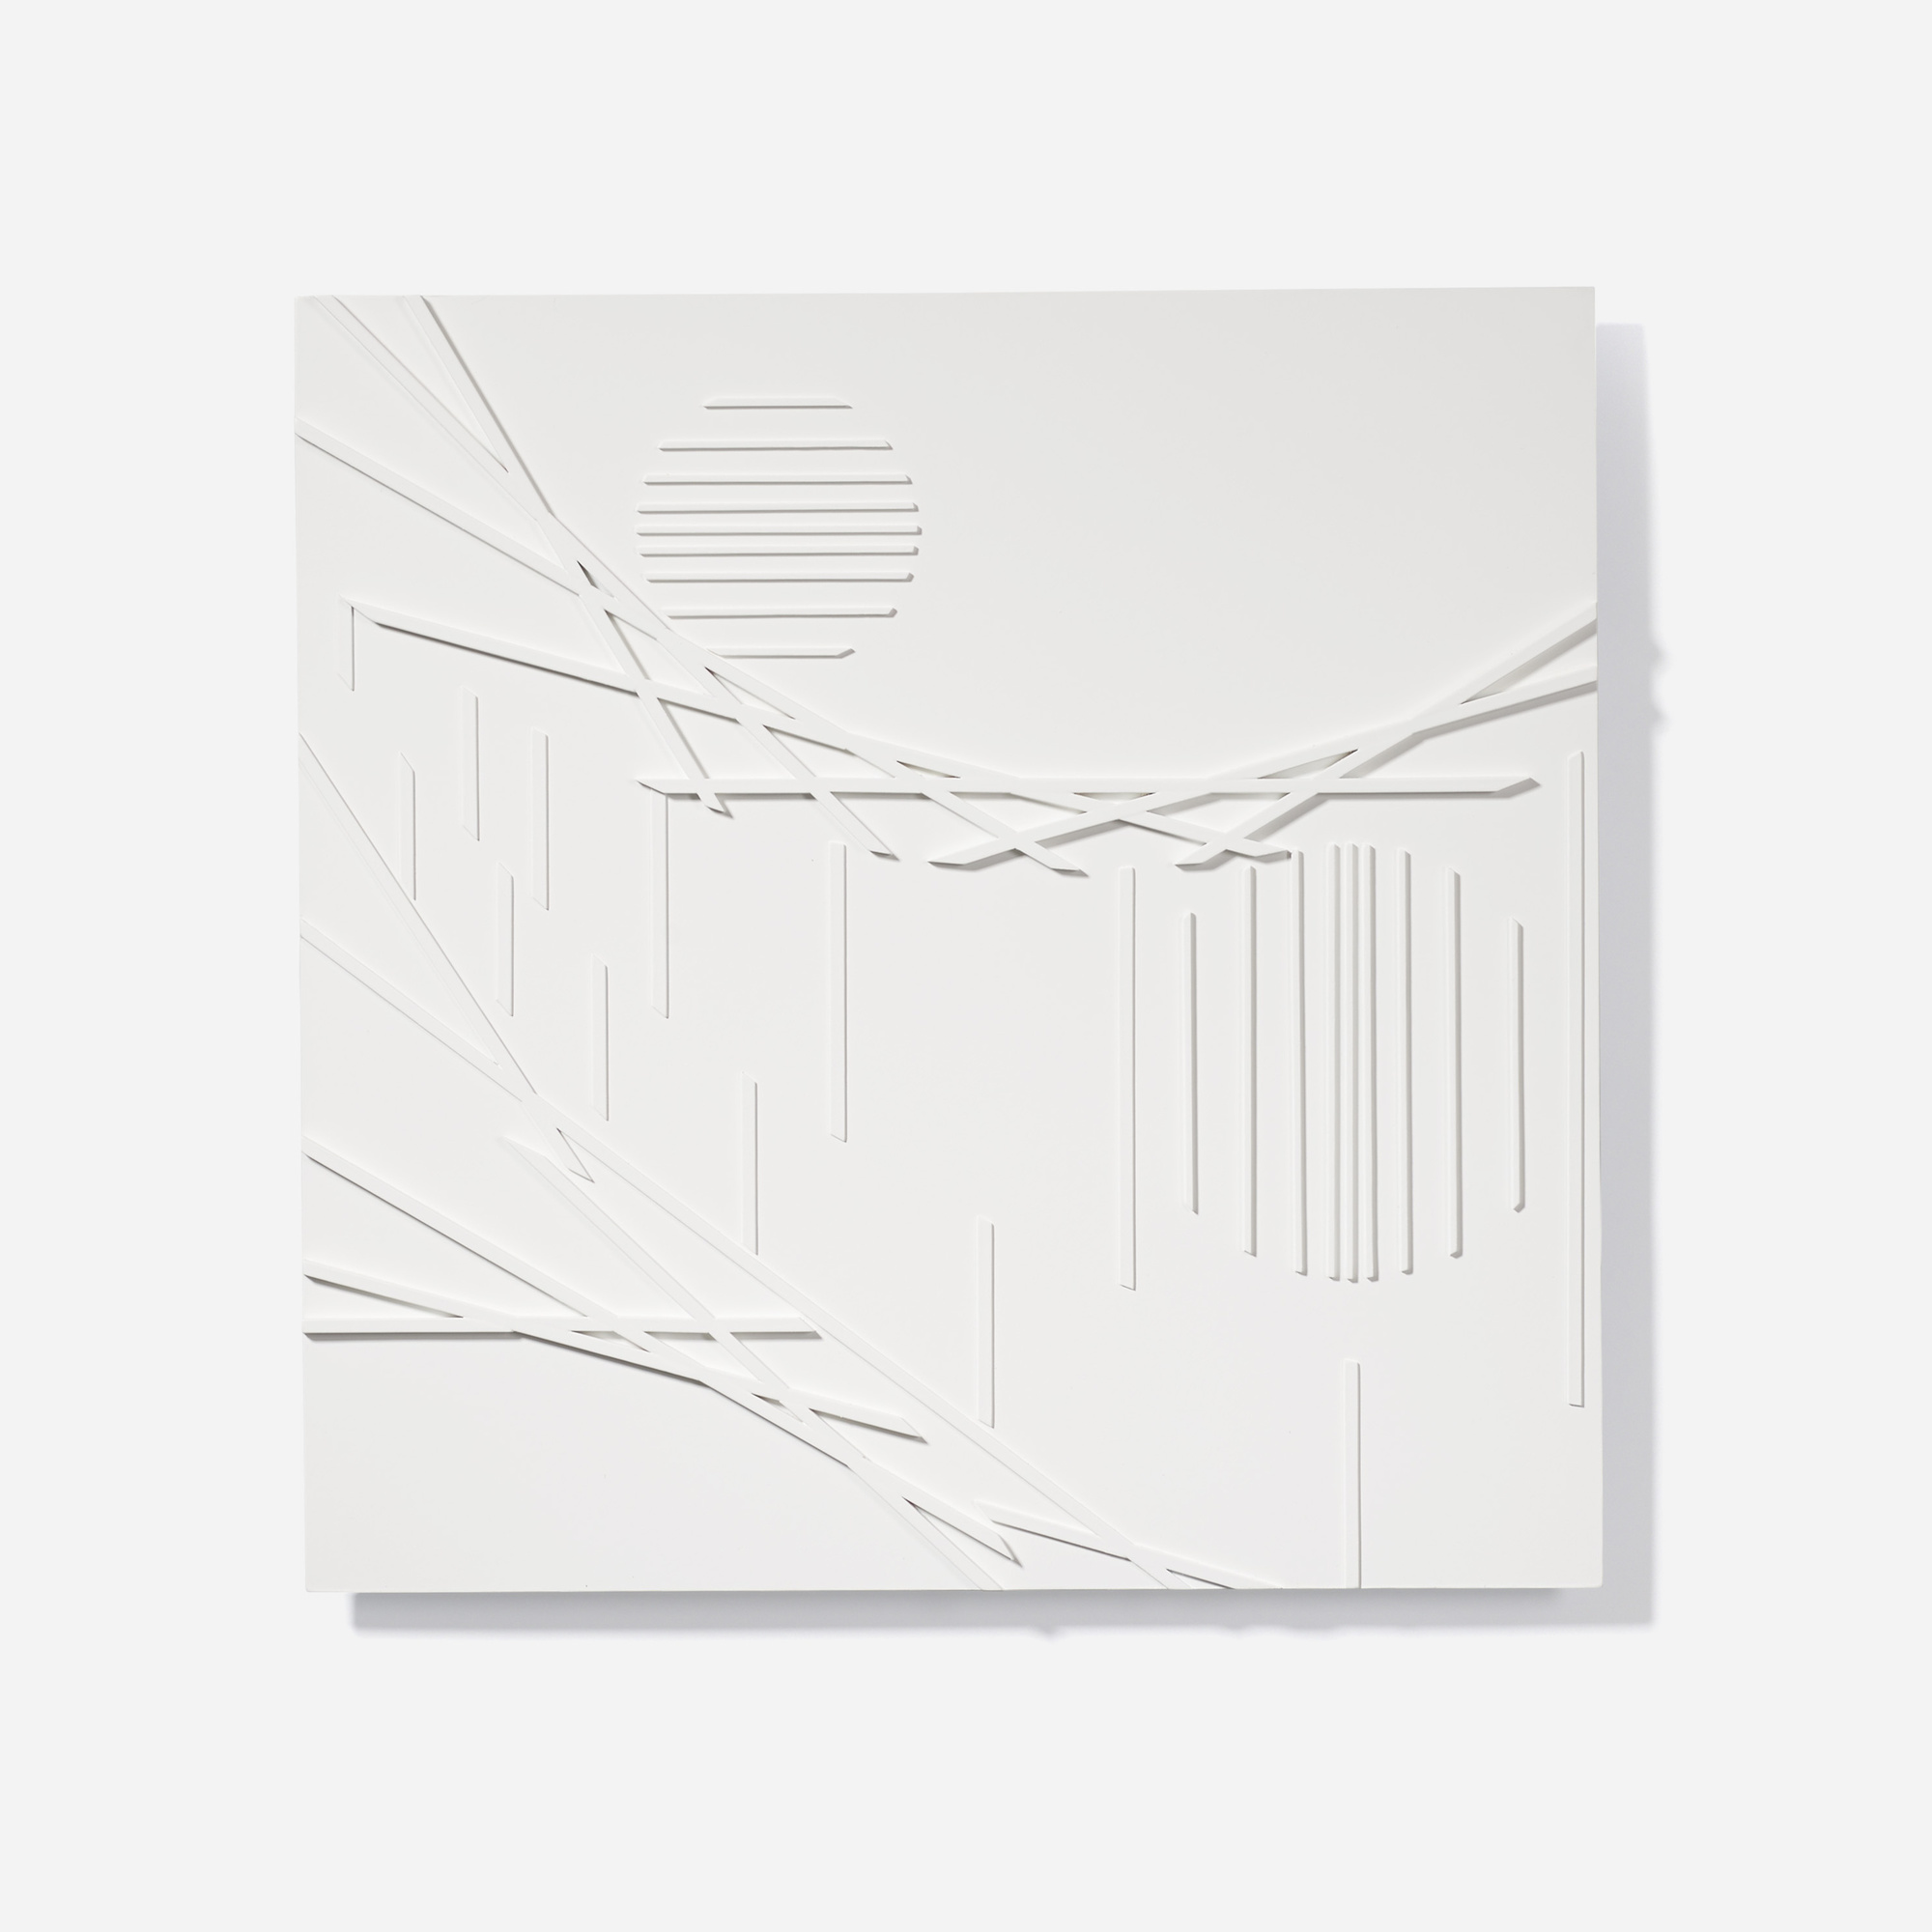 151: David Barr / Structurist Relief No. 360 (1 of 3)